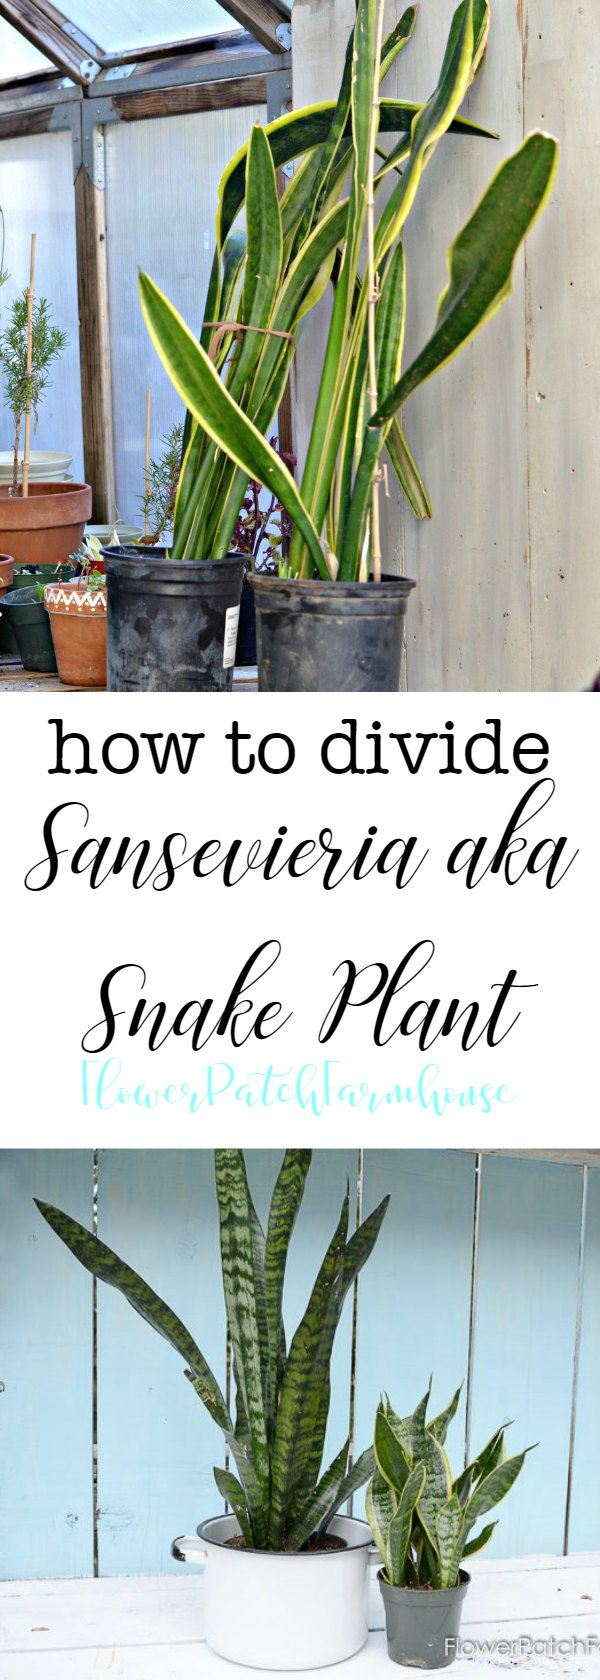 How to Divide Sansevieria plant also known as Snake Plant or Mother in Law's Tongue.  #sansevieria #plantdivision #houseplants